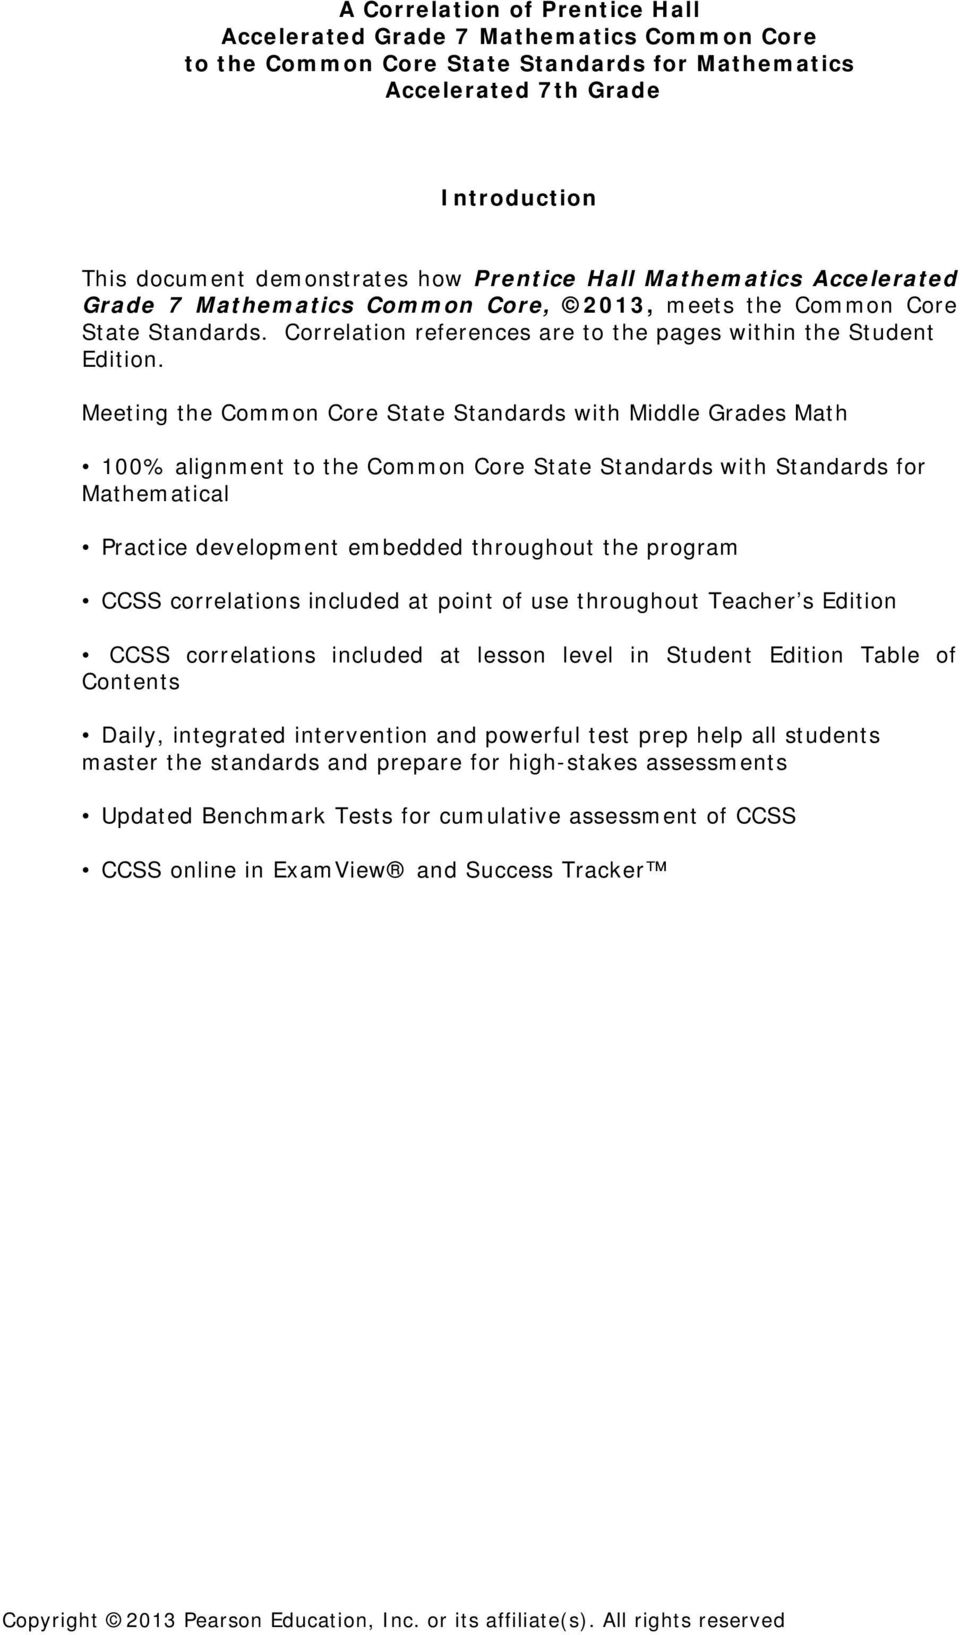 Common Core State Standards for Mathematics Accelerated 7th Grade - PDF